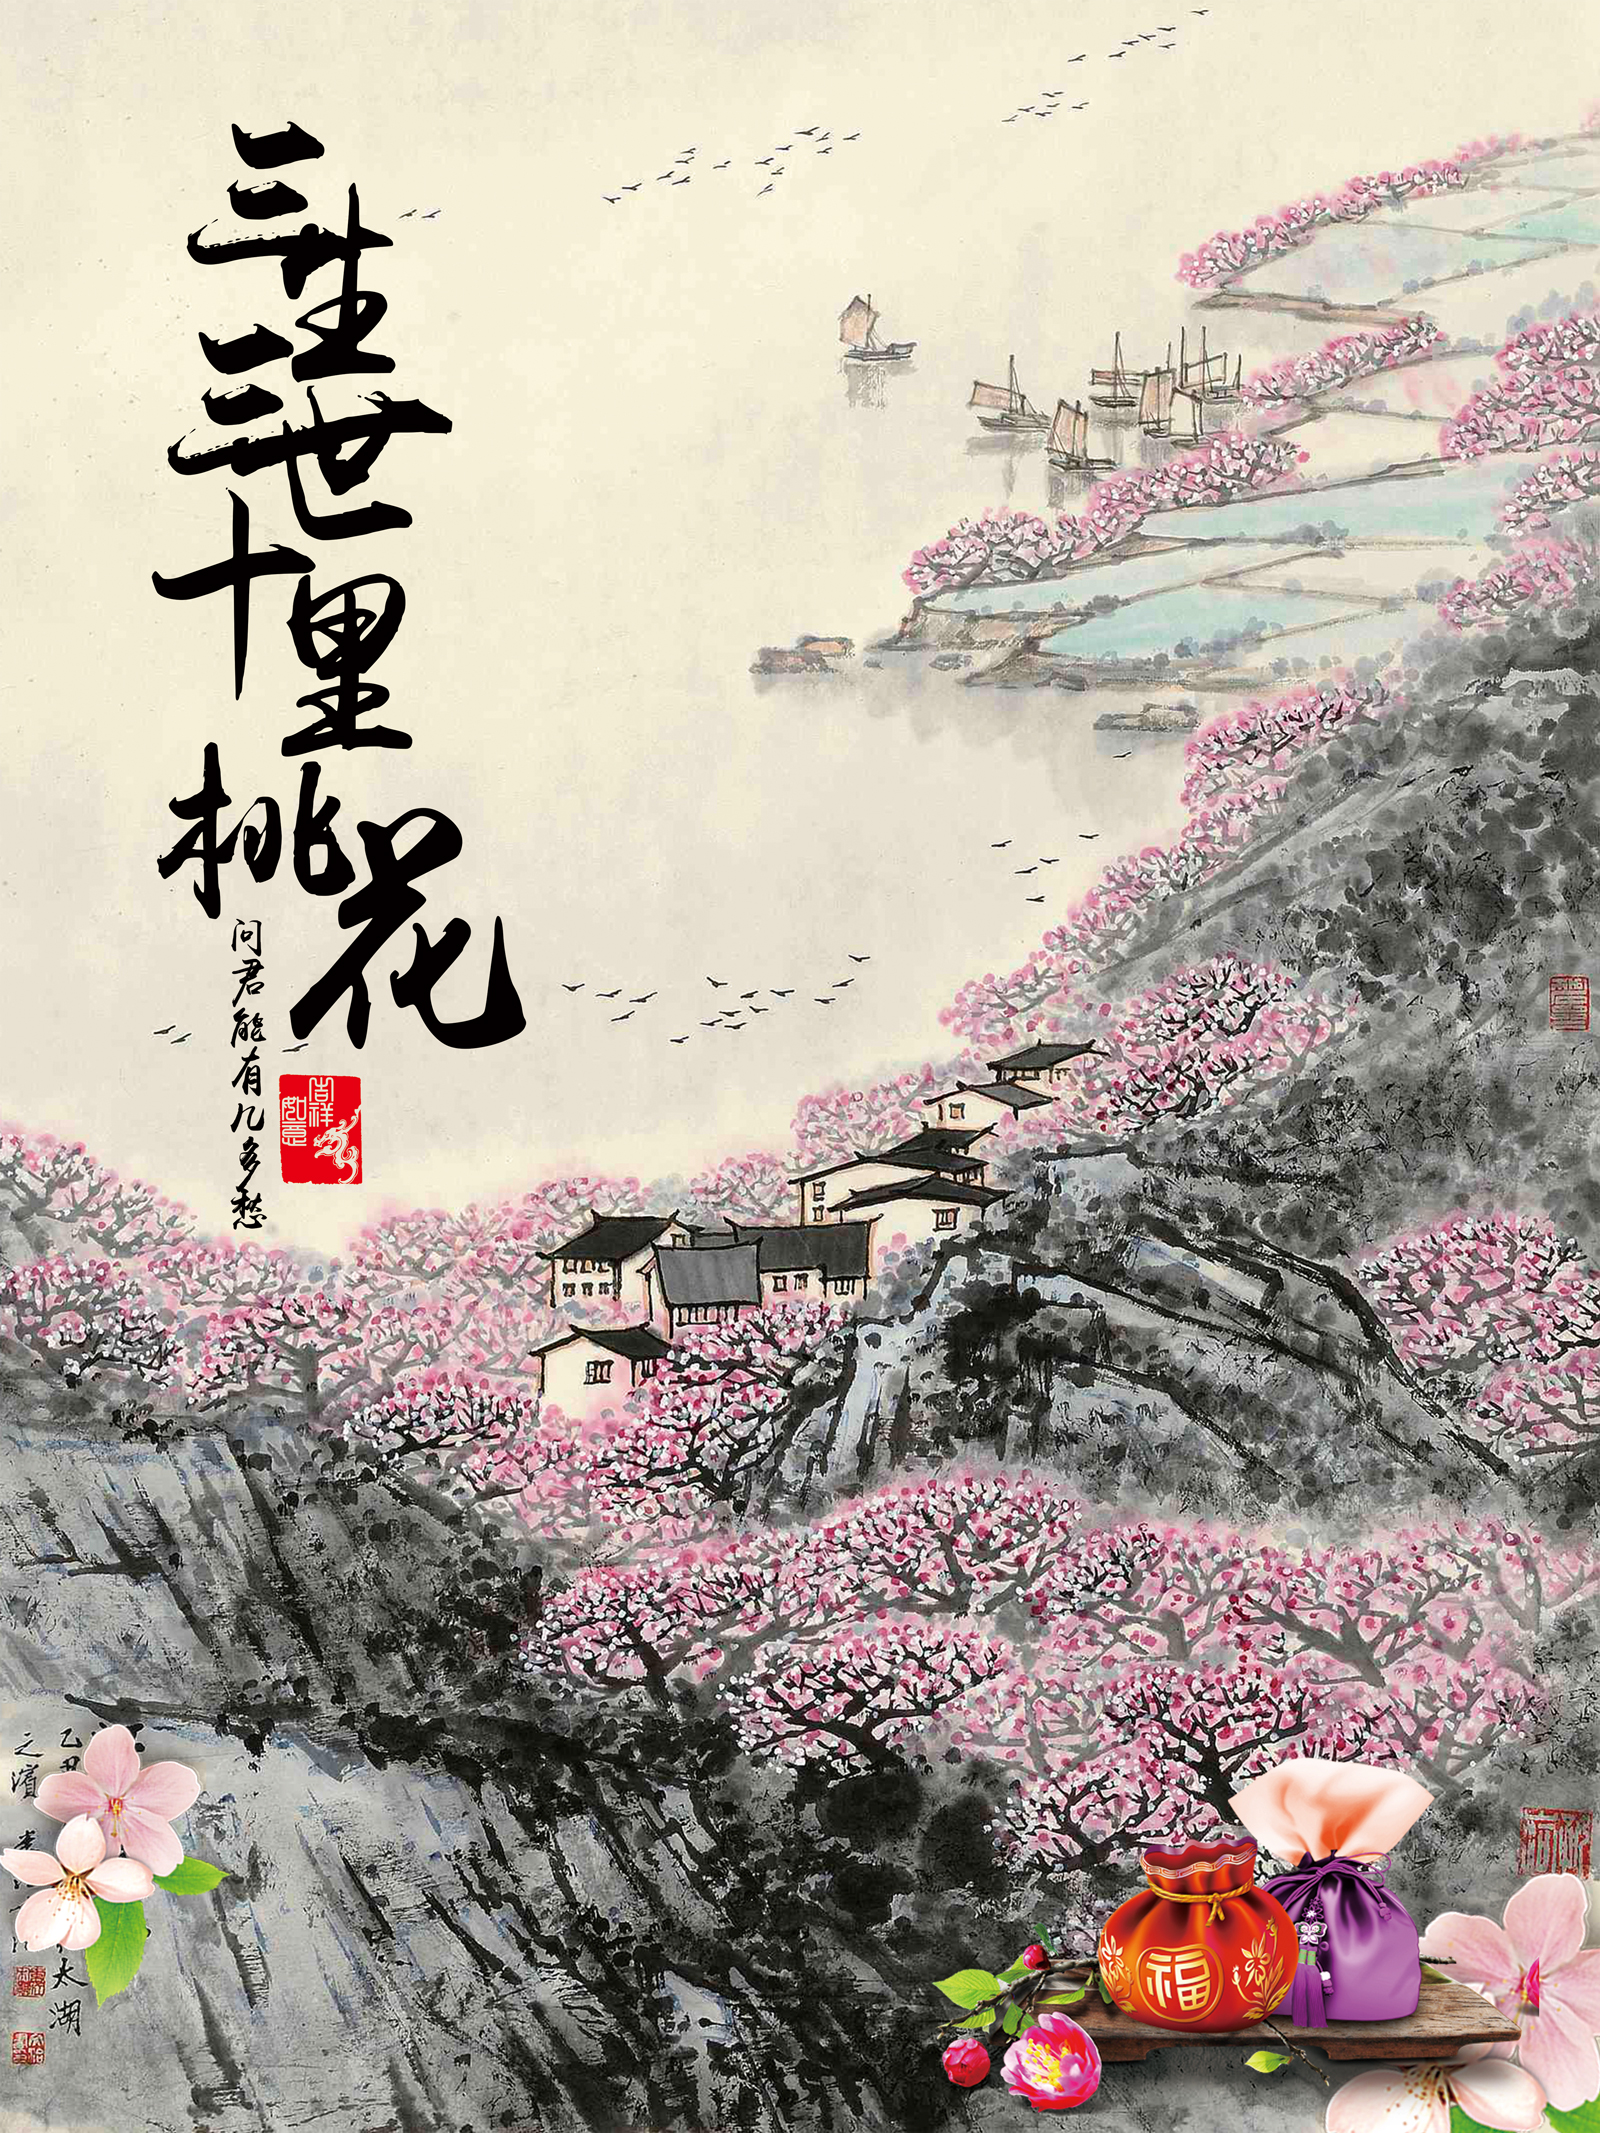 chinesefontdesign.com 2017 03 18 16 08 46 Ink peach flower festival poster PSD material File Free Download